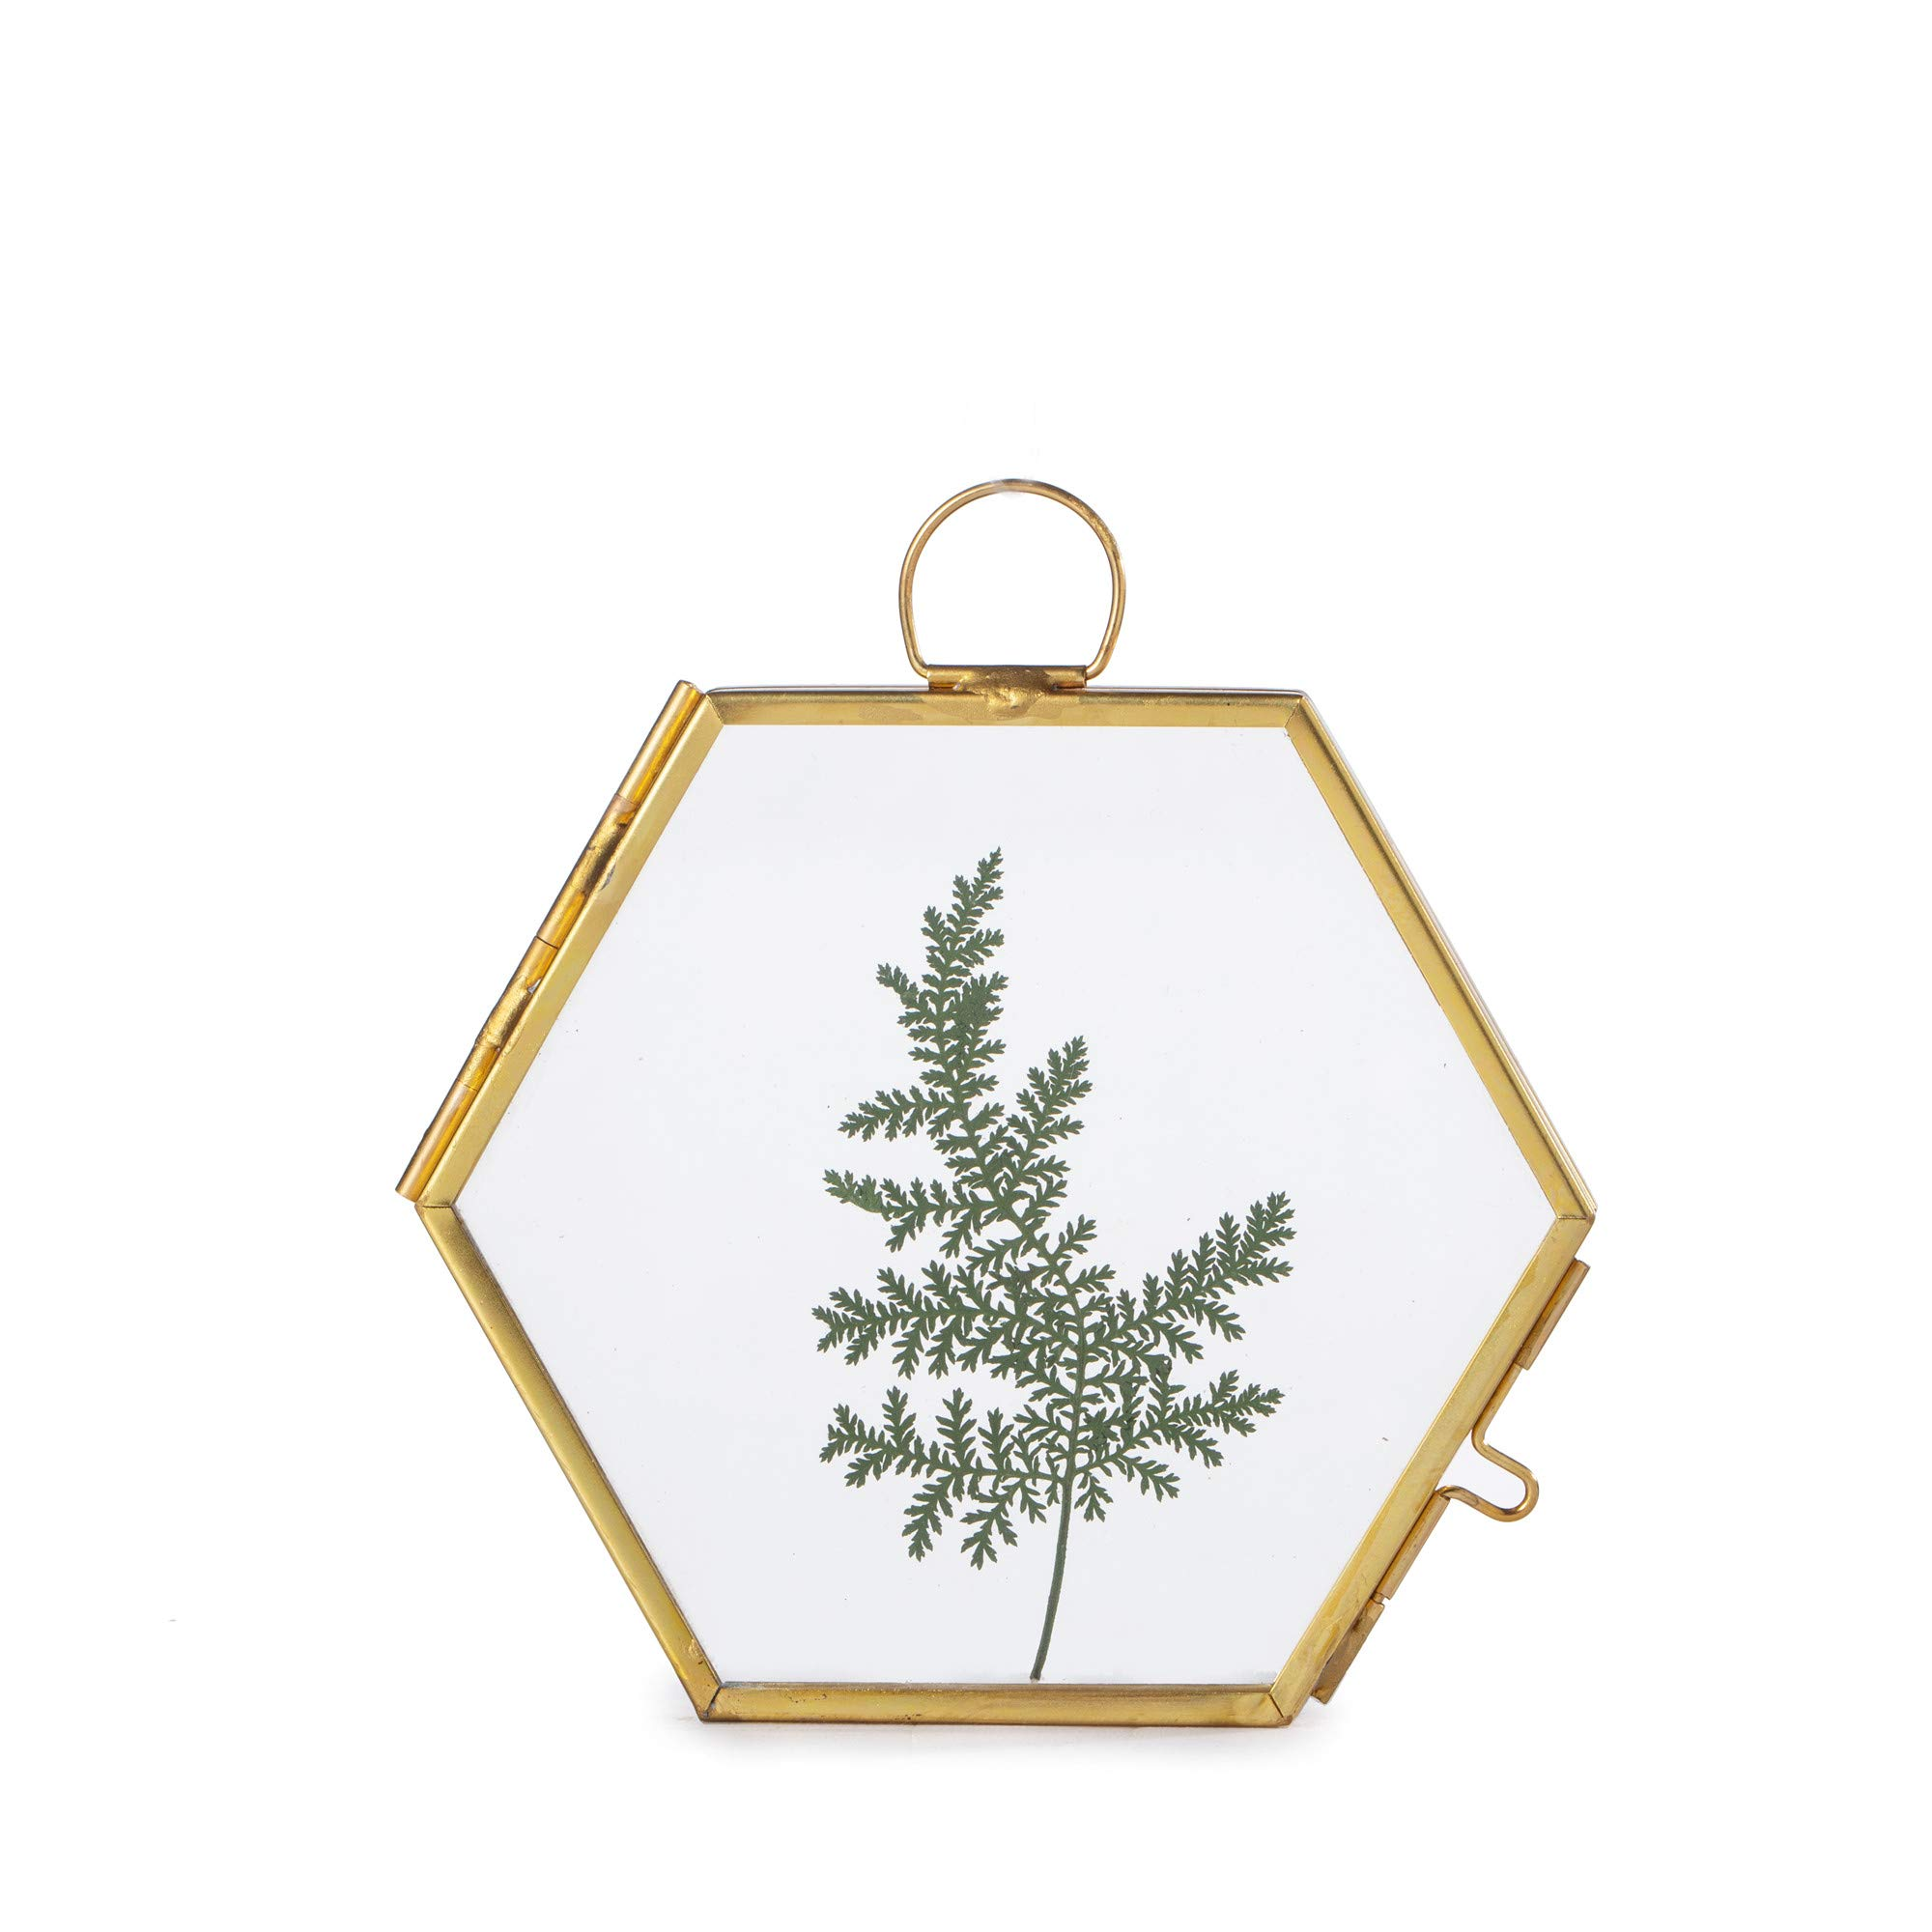 NCYP Small Wall Hanging Brass Hexagon Glass Artwork Certificate Photo Picture Display Frame Geometric Ornament Plant Specimen Clip Modern Vertical Decor Card Holder 3.5 inchs by NCYP